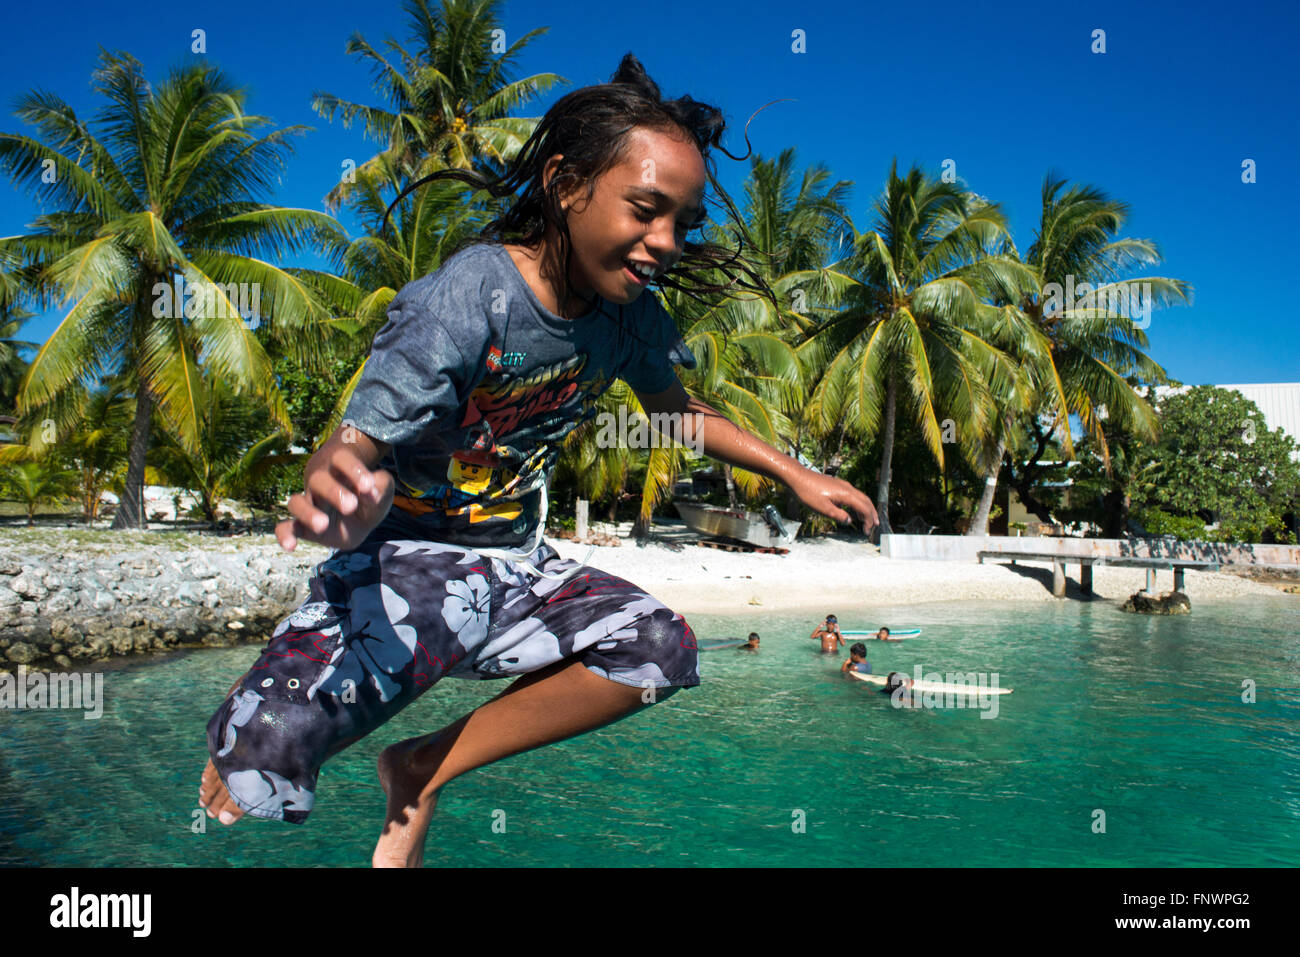 Beach of Rangiroa, Tuamotu Islands, French Polynesia, South Pacific. A kid playing and jumping in to the water. - Stock Image